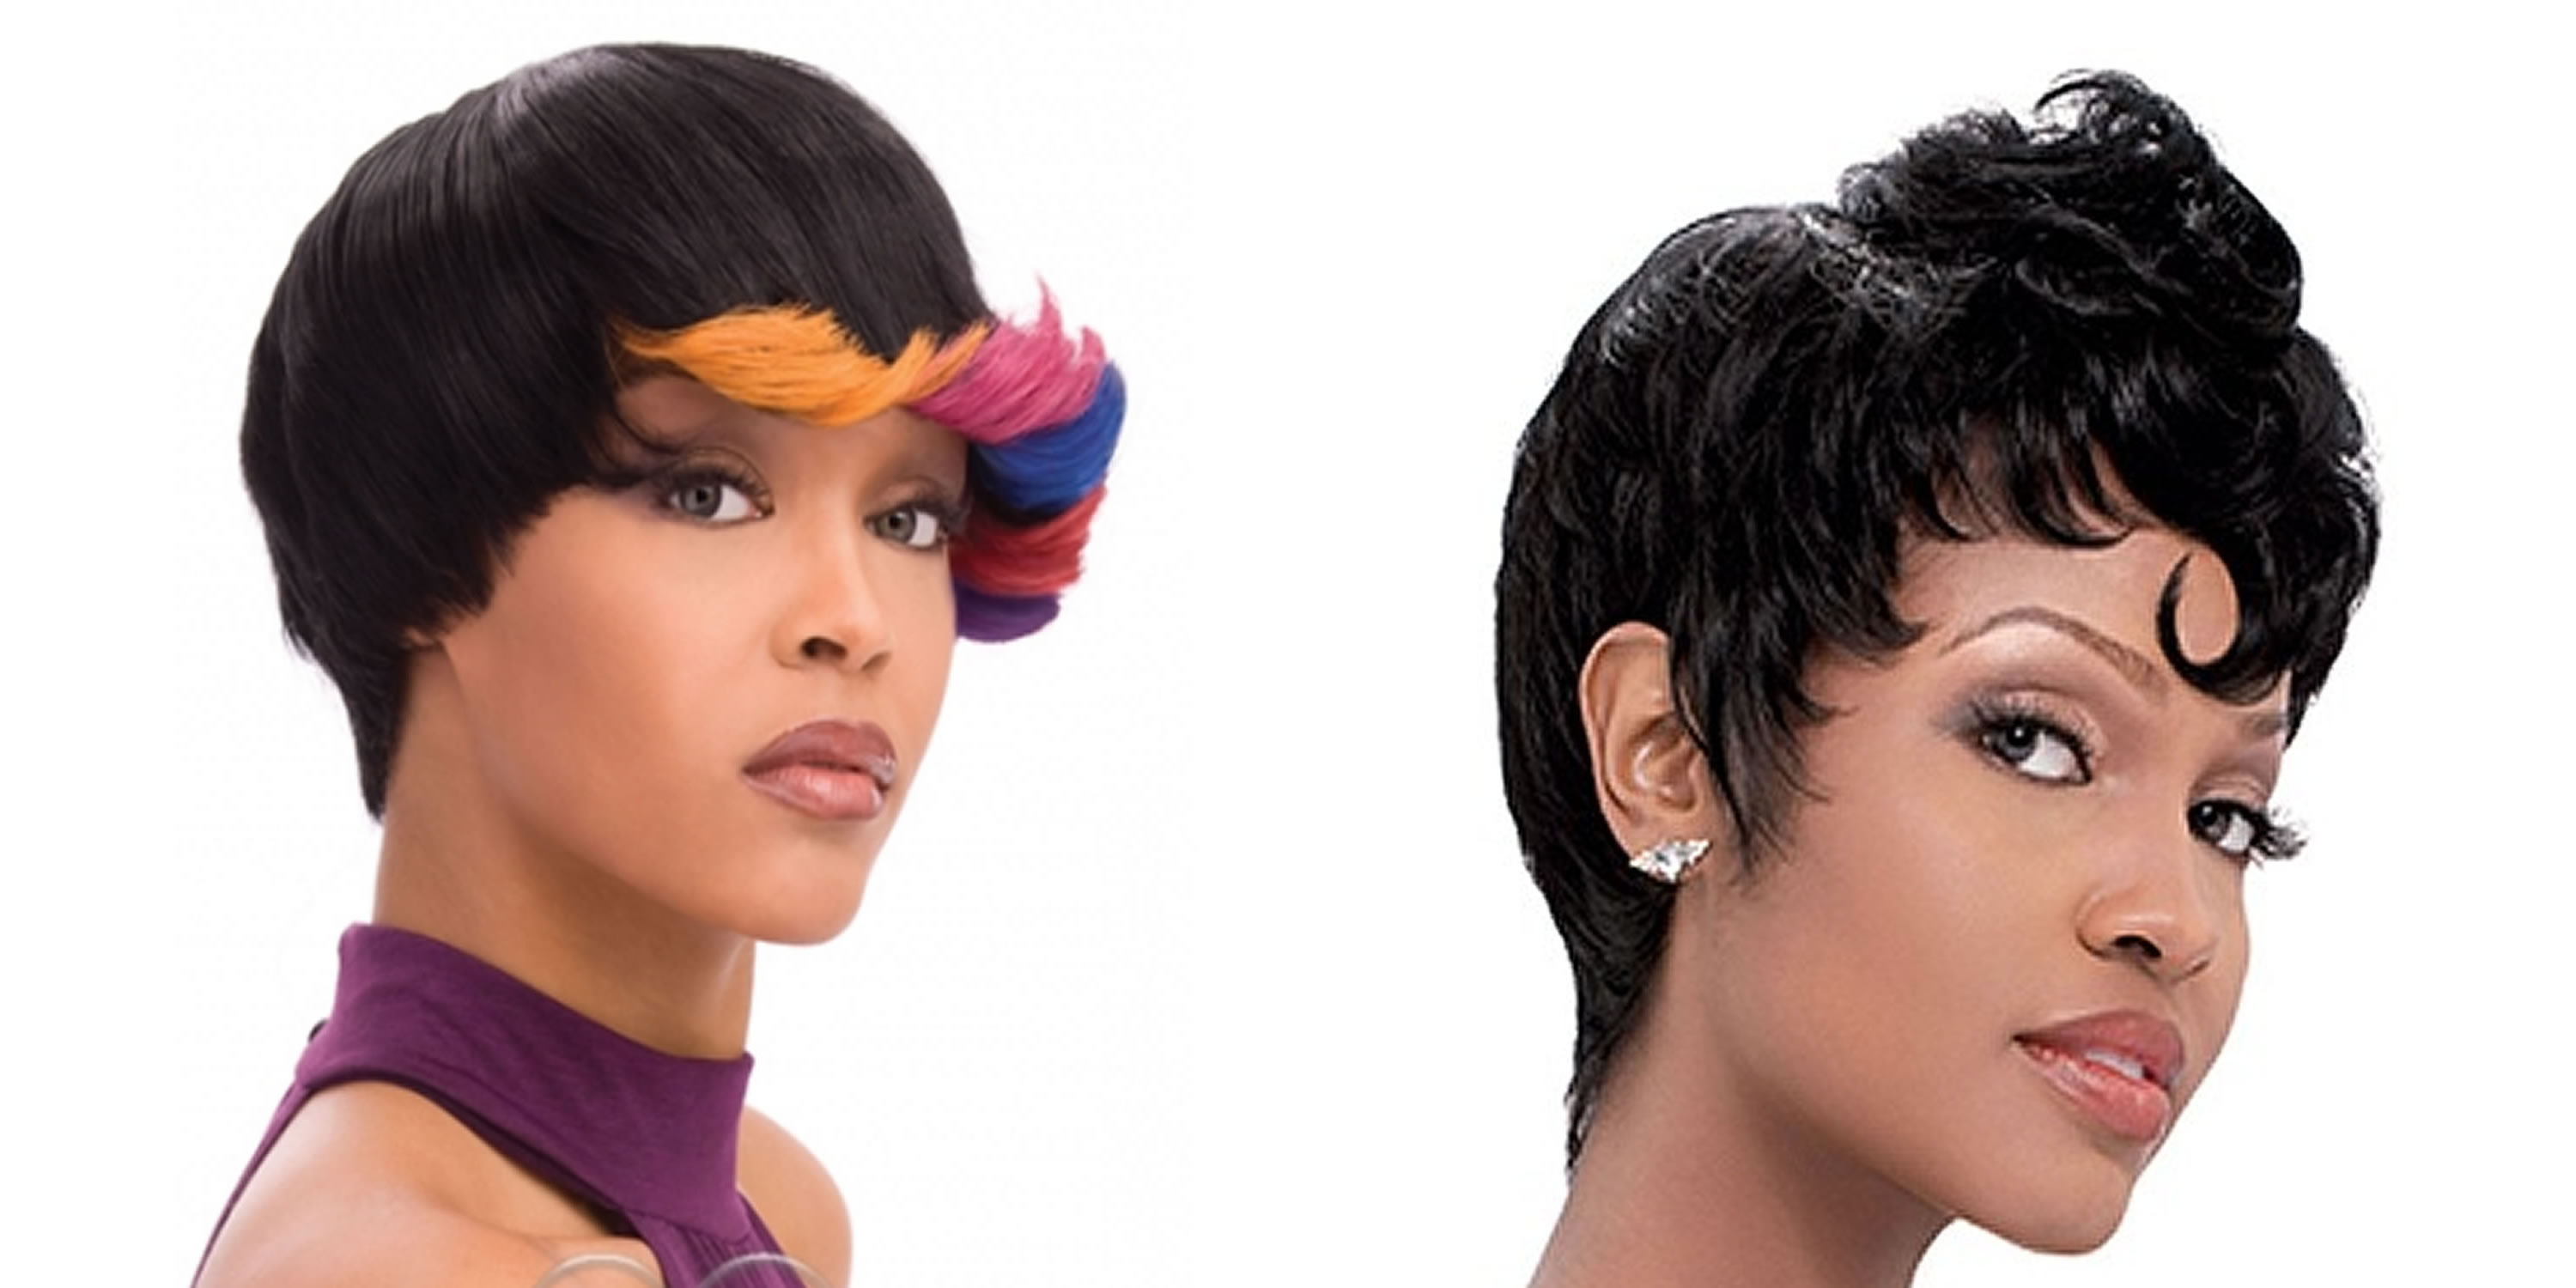 Pixie Hairstyles For Black Women – 60 Cool Short Haircuts For 2017 In Black Women Short Haircuts (View 11 of 25)